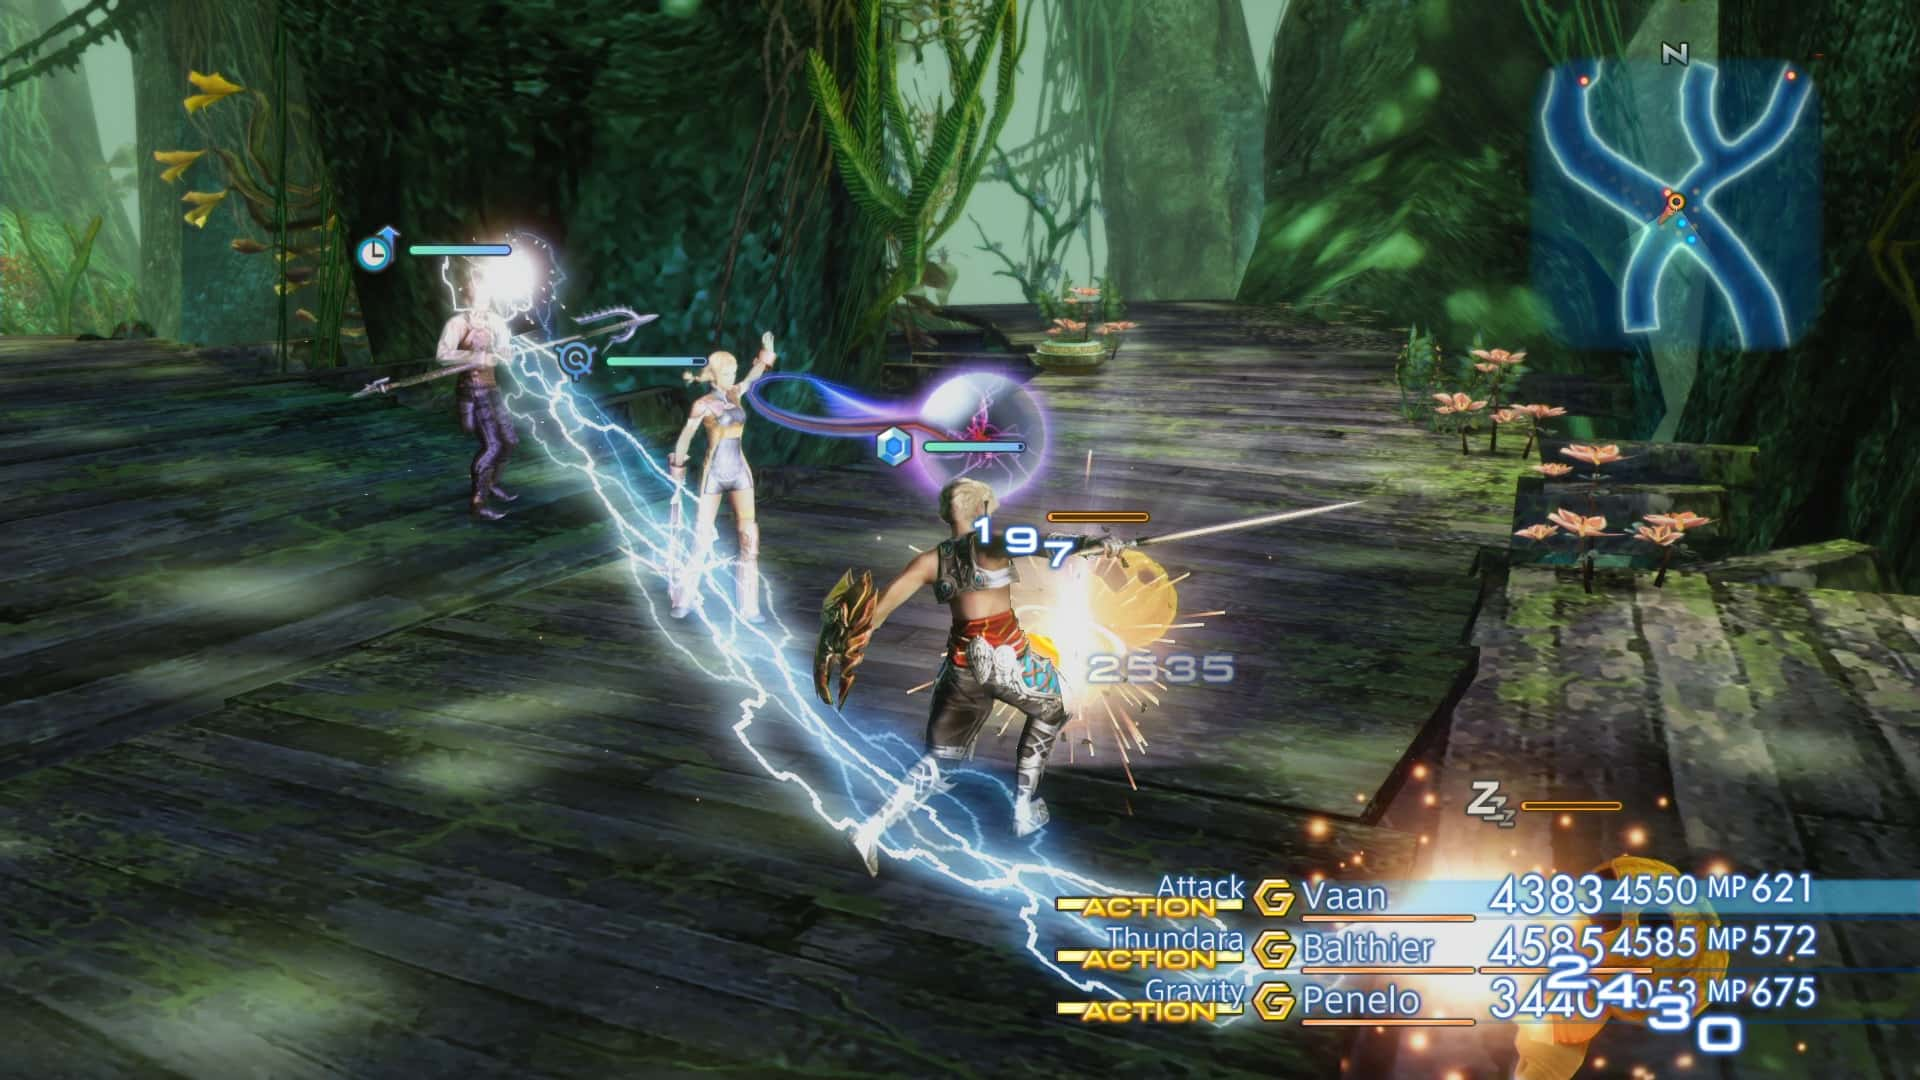 FINAL FANTASY XII THE ZODIAC AGE Screenshot